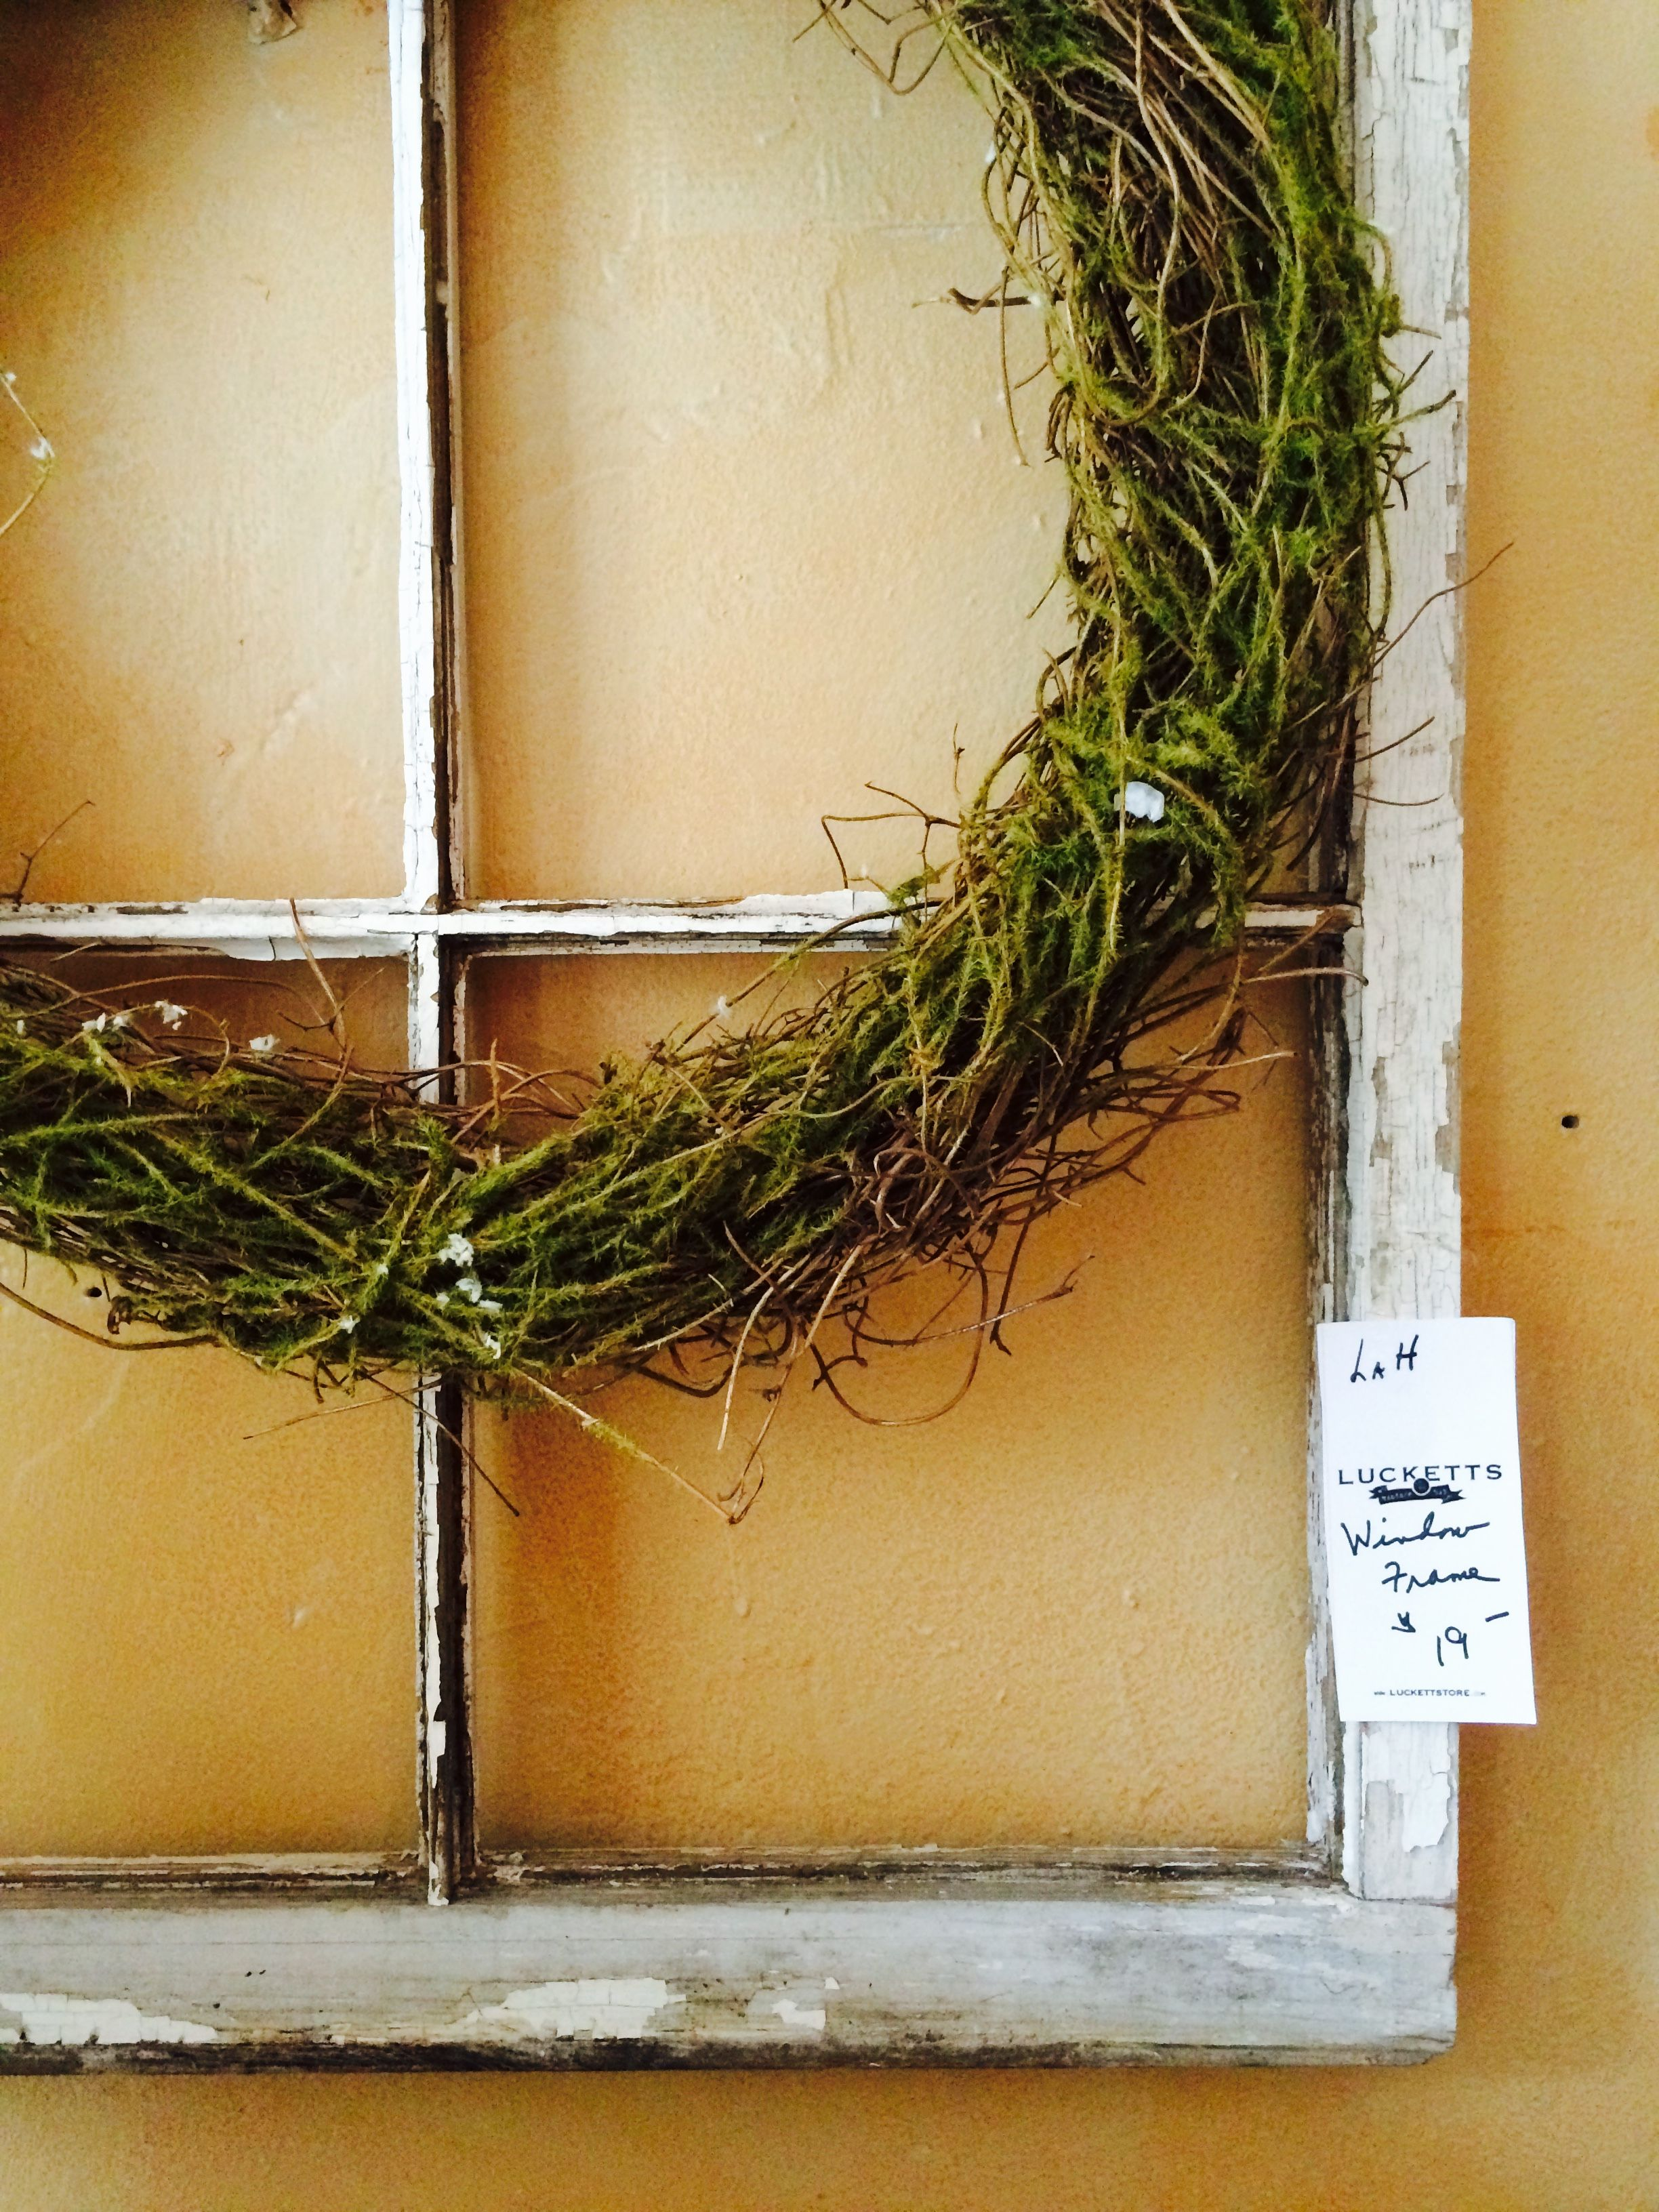 Mossy wreath framed in a sweet old window in Marylou's garden room @luckettstore.com